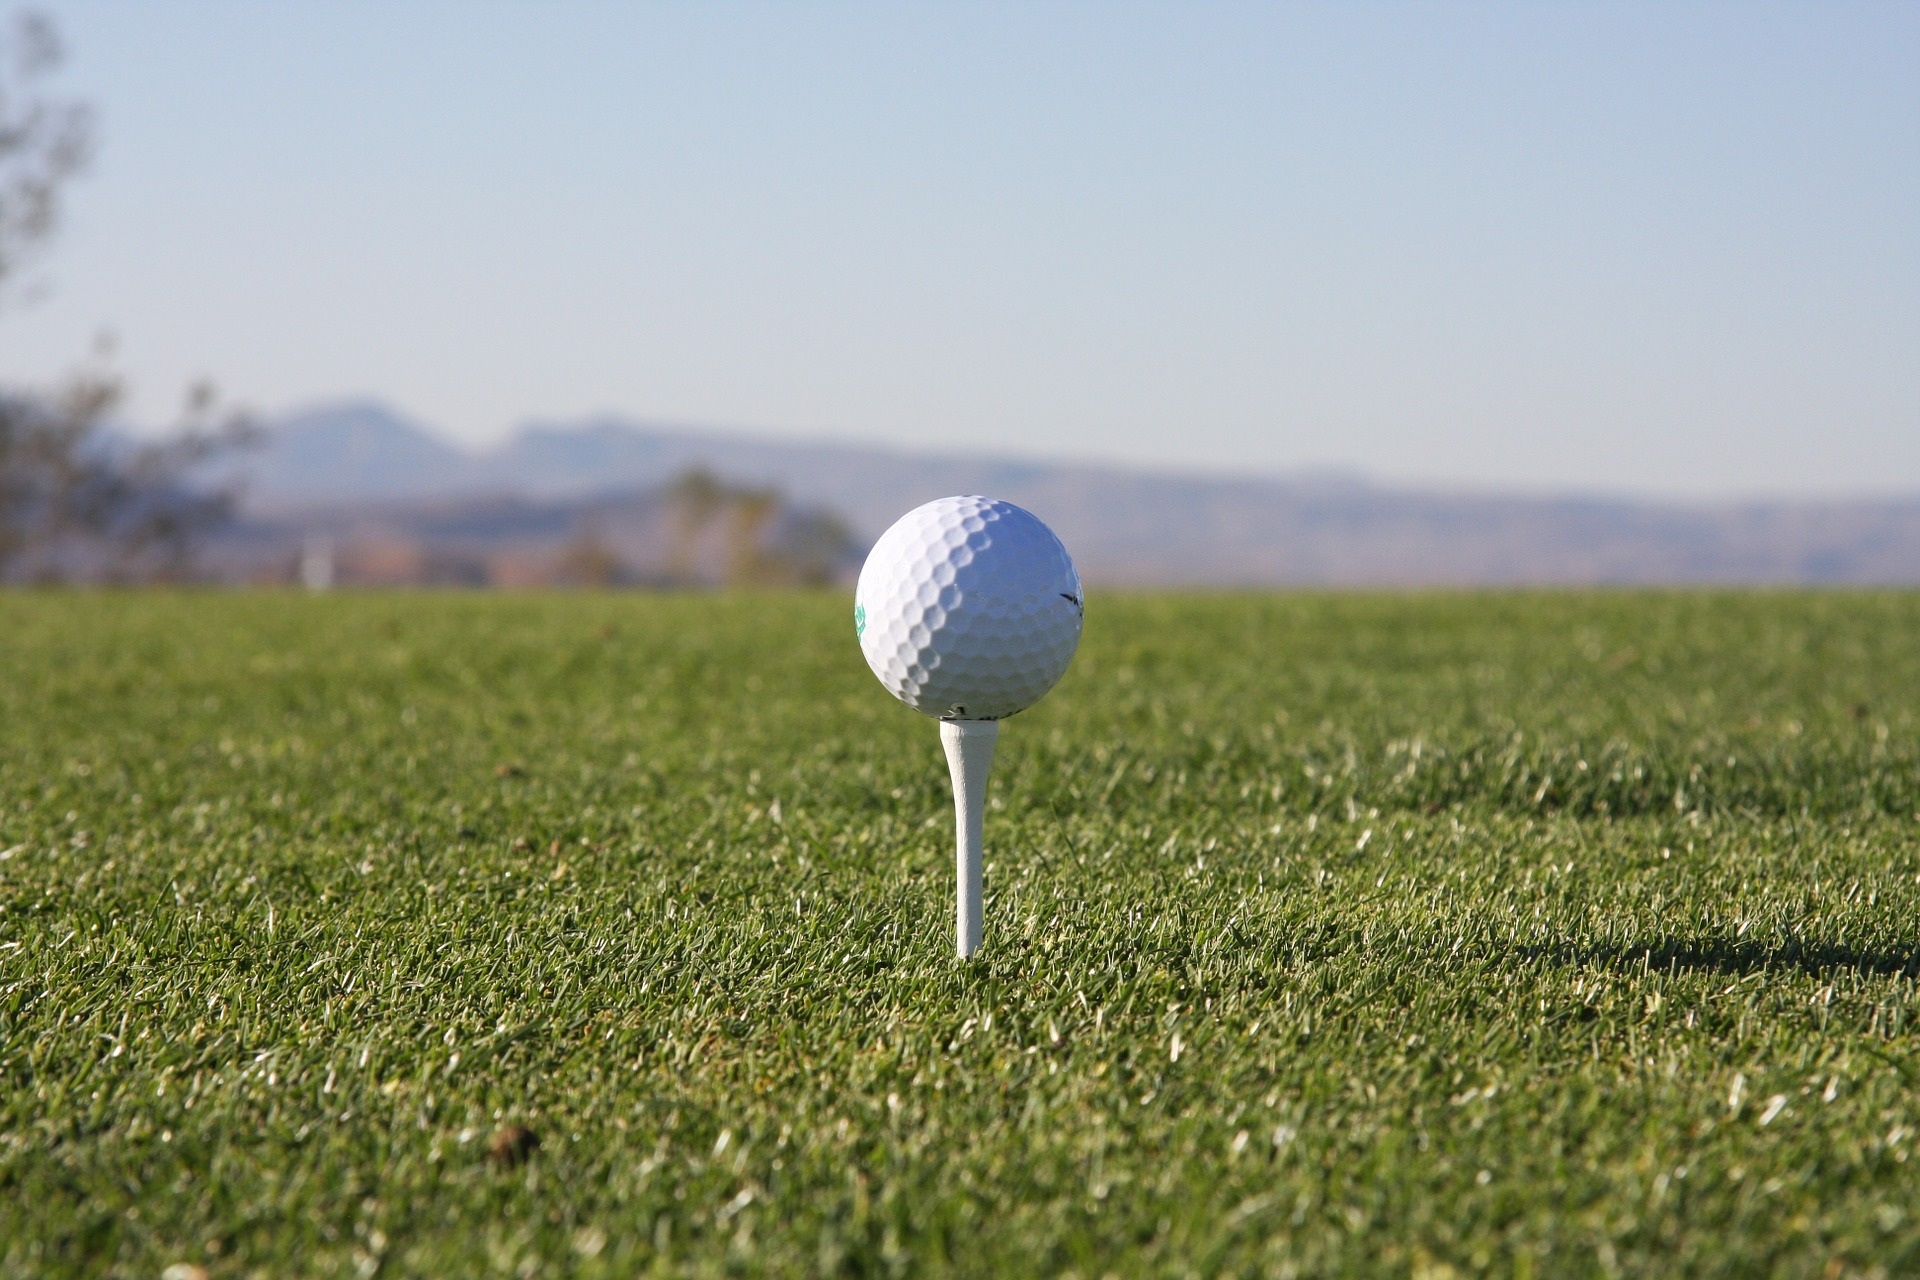 July 16: Summer Fun Day at Timbercreek Golf